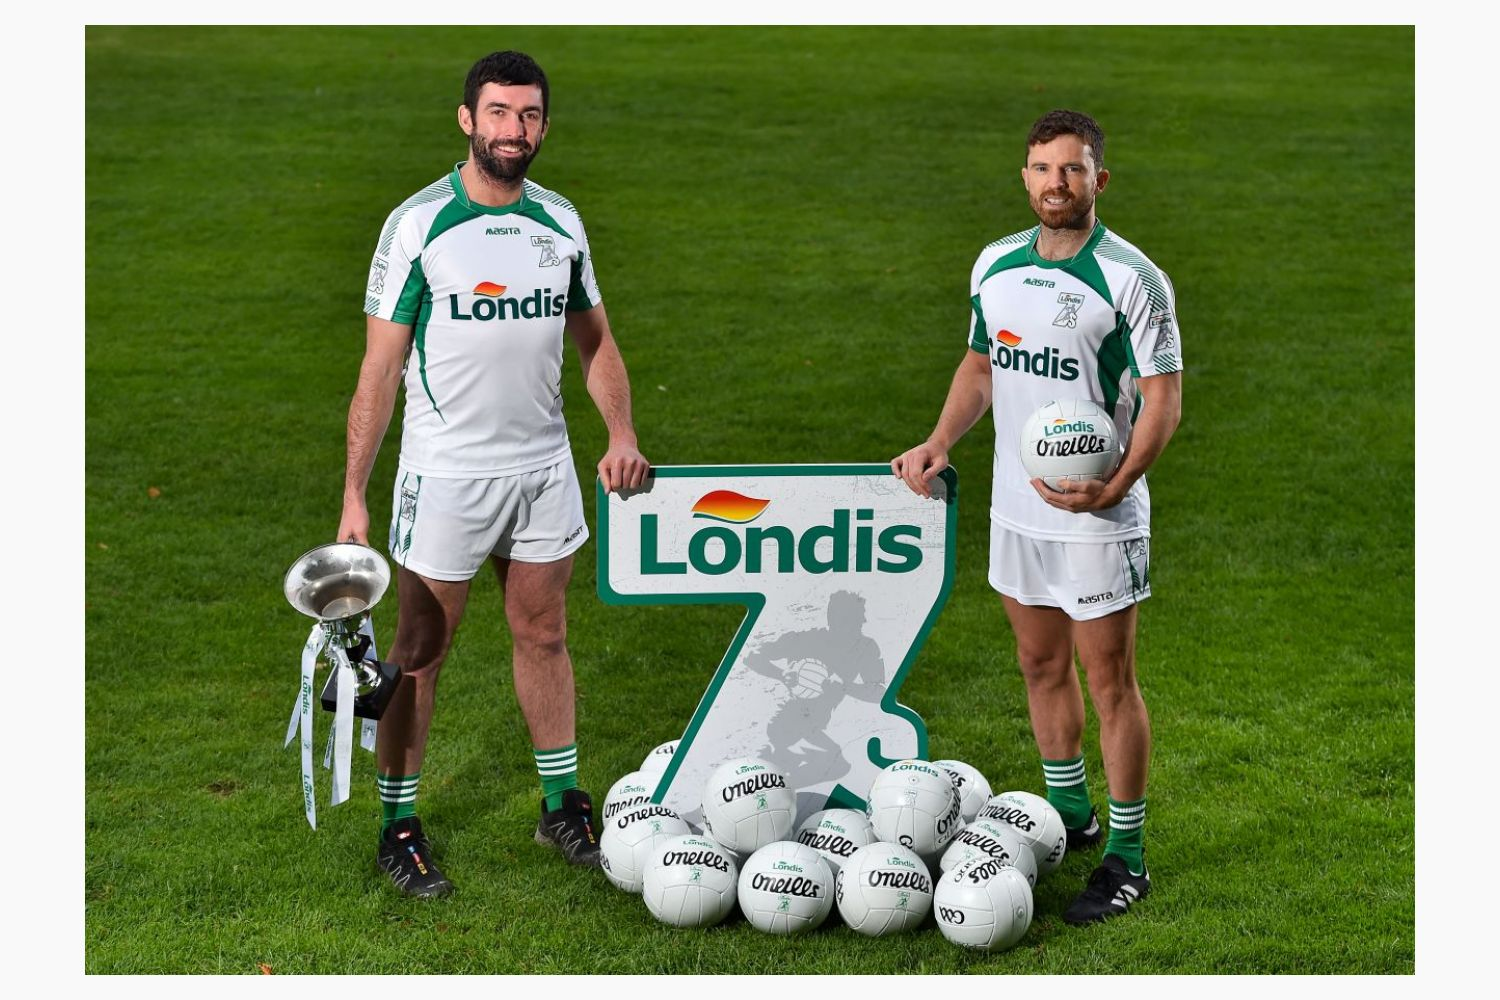 Londis tog-out for this year's All-Ireland Football Sevens